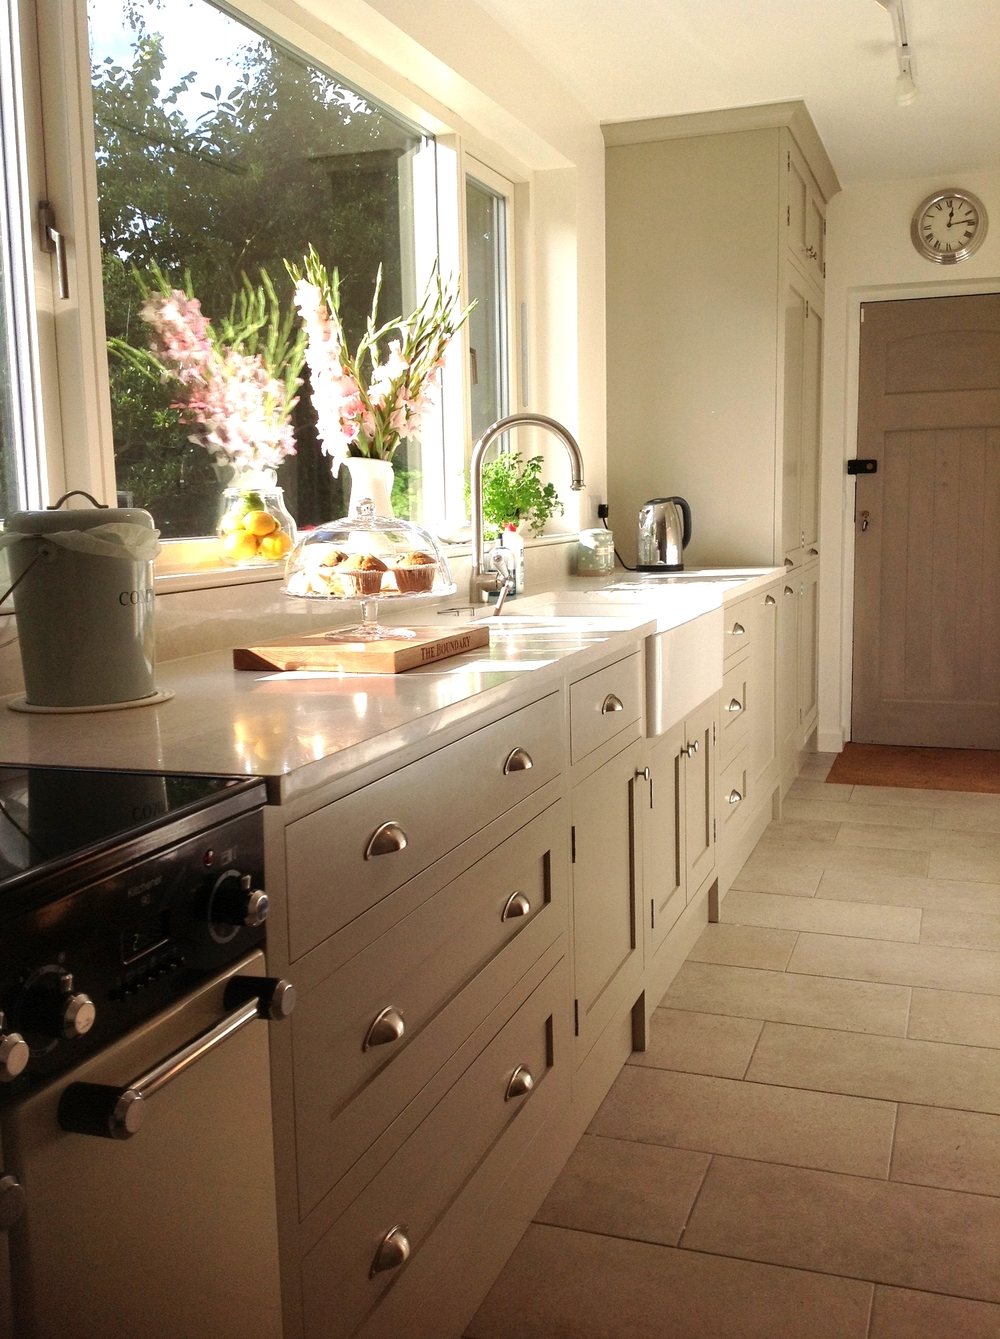 The Boundary   A traditional Shaker-style kitchen.  Runner-up in the Marion John Kitchen Design Awards, The Boundary is a beautiful, bespoke kitchen. Complementing the large garden view, bringing outside inside with its earthy colours and subtlety, The Boundary is worthy of all its credit.   Cabinetry - hand-painted in Farrow & Ball's French Gray: £9000 installed.    Worktops - Quartz Arenastone Grigio Venato, with upstands, cut-outs and grooves: £2500 installed.    Additions: double-bowl Belfast sink, pull-out larder and Smeg slimline extractor and extractor housing: £1850 approx. installed.